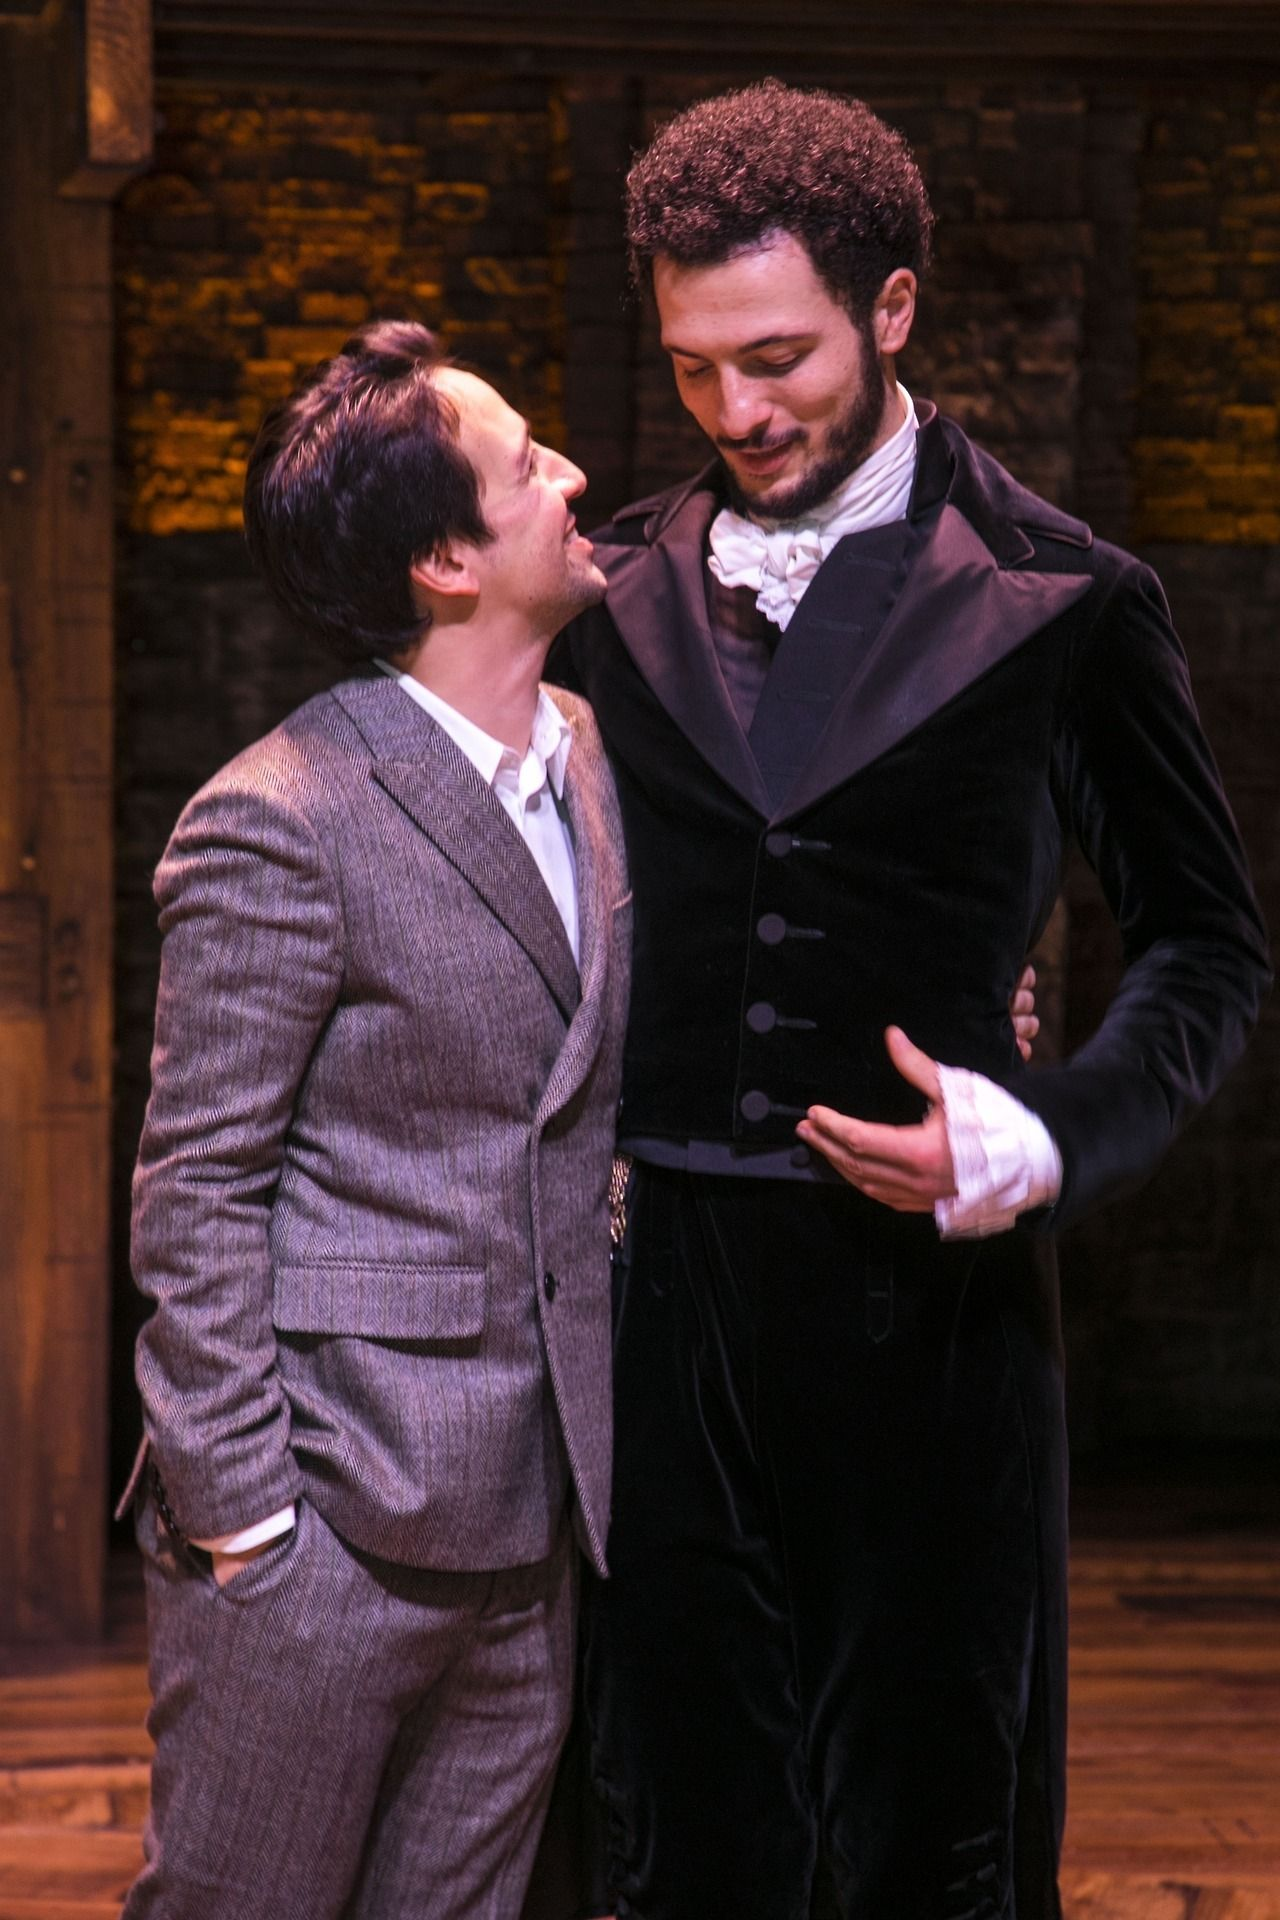 Pin By Talia Rhinehart On Height Difference Lin Manuel Miranda Lin Manuel Hamilton Musical Read reviews from world's largest community for readers. pinterest